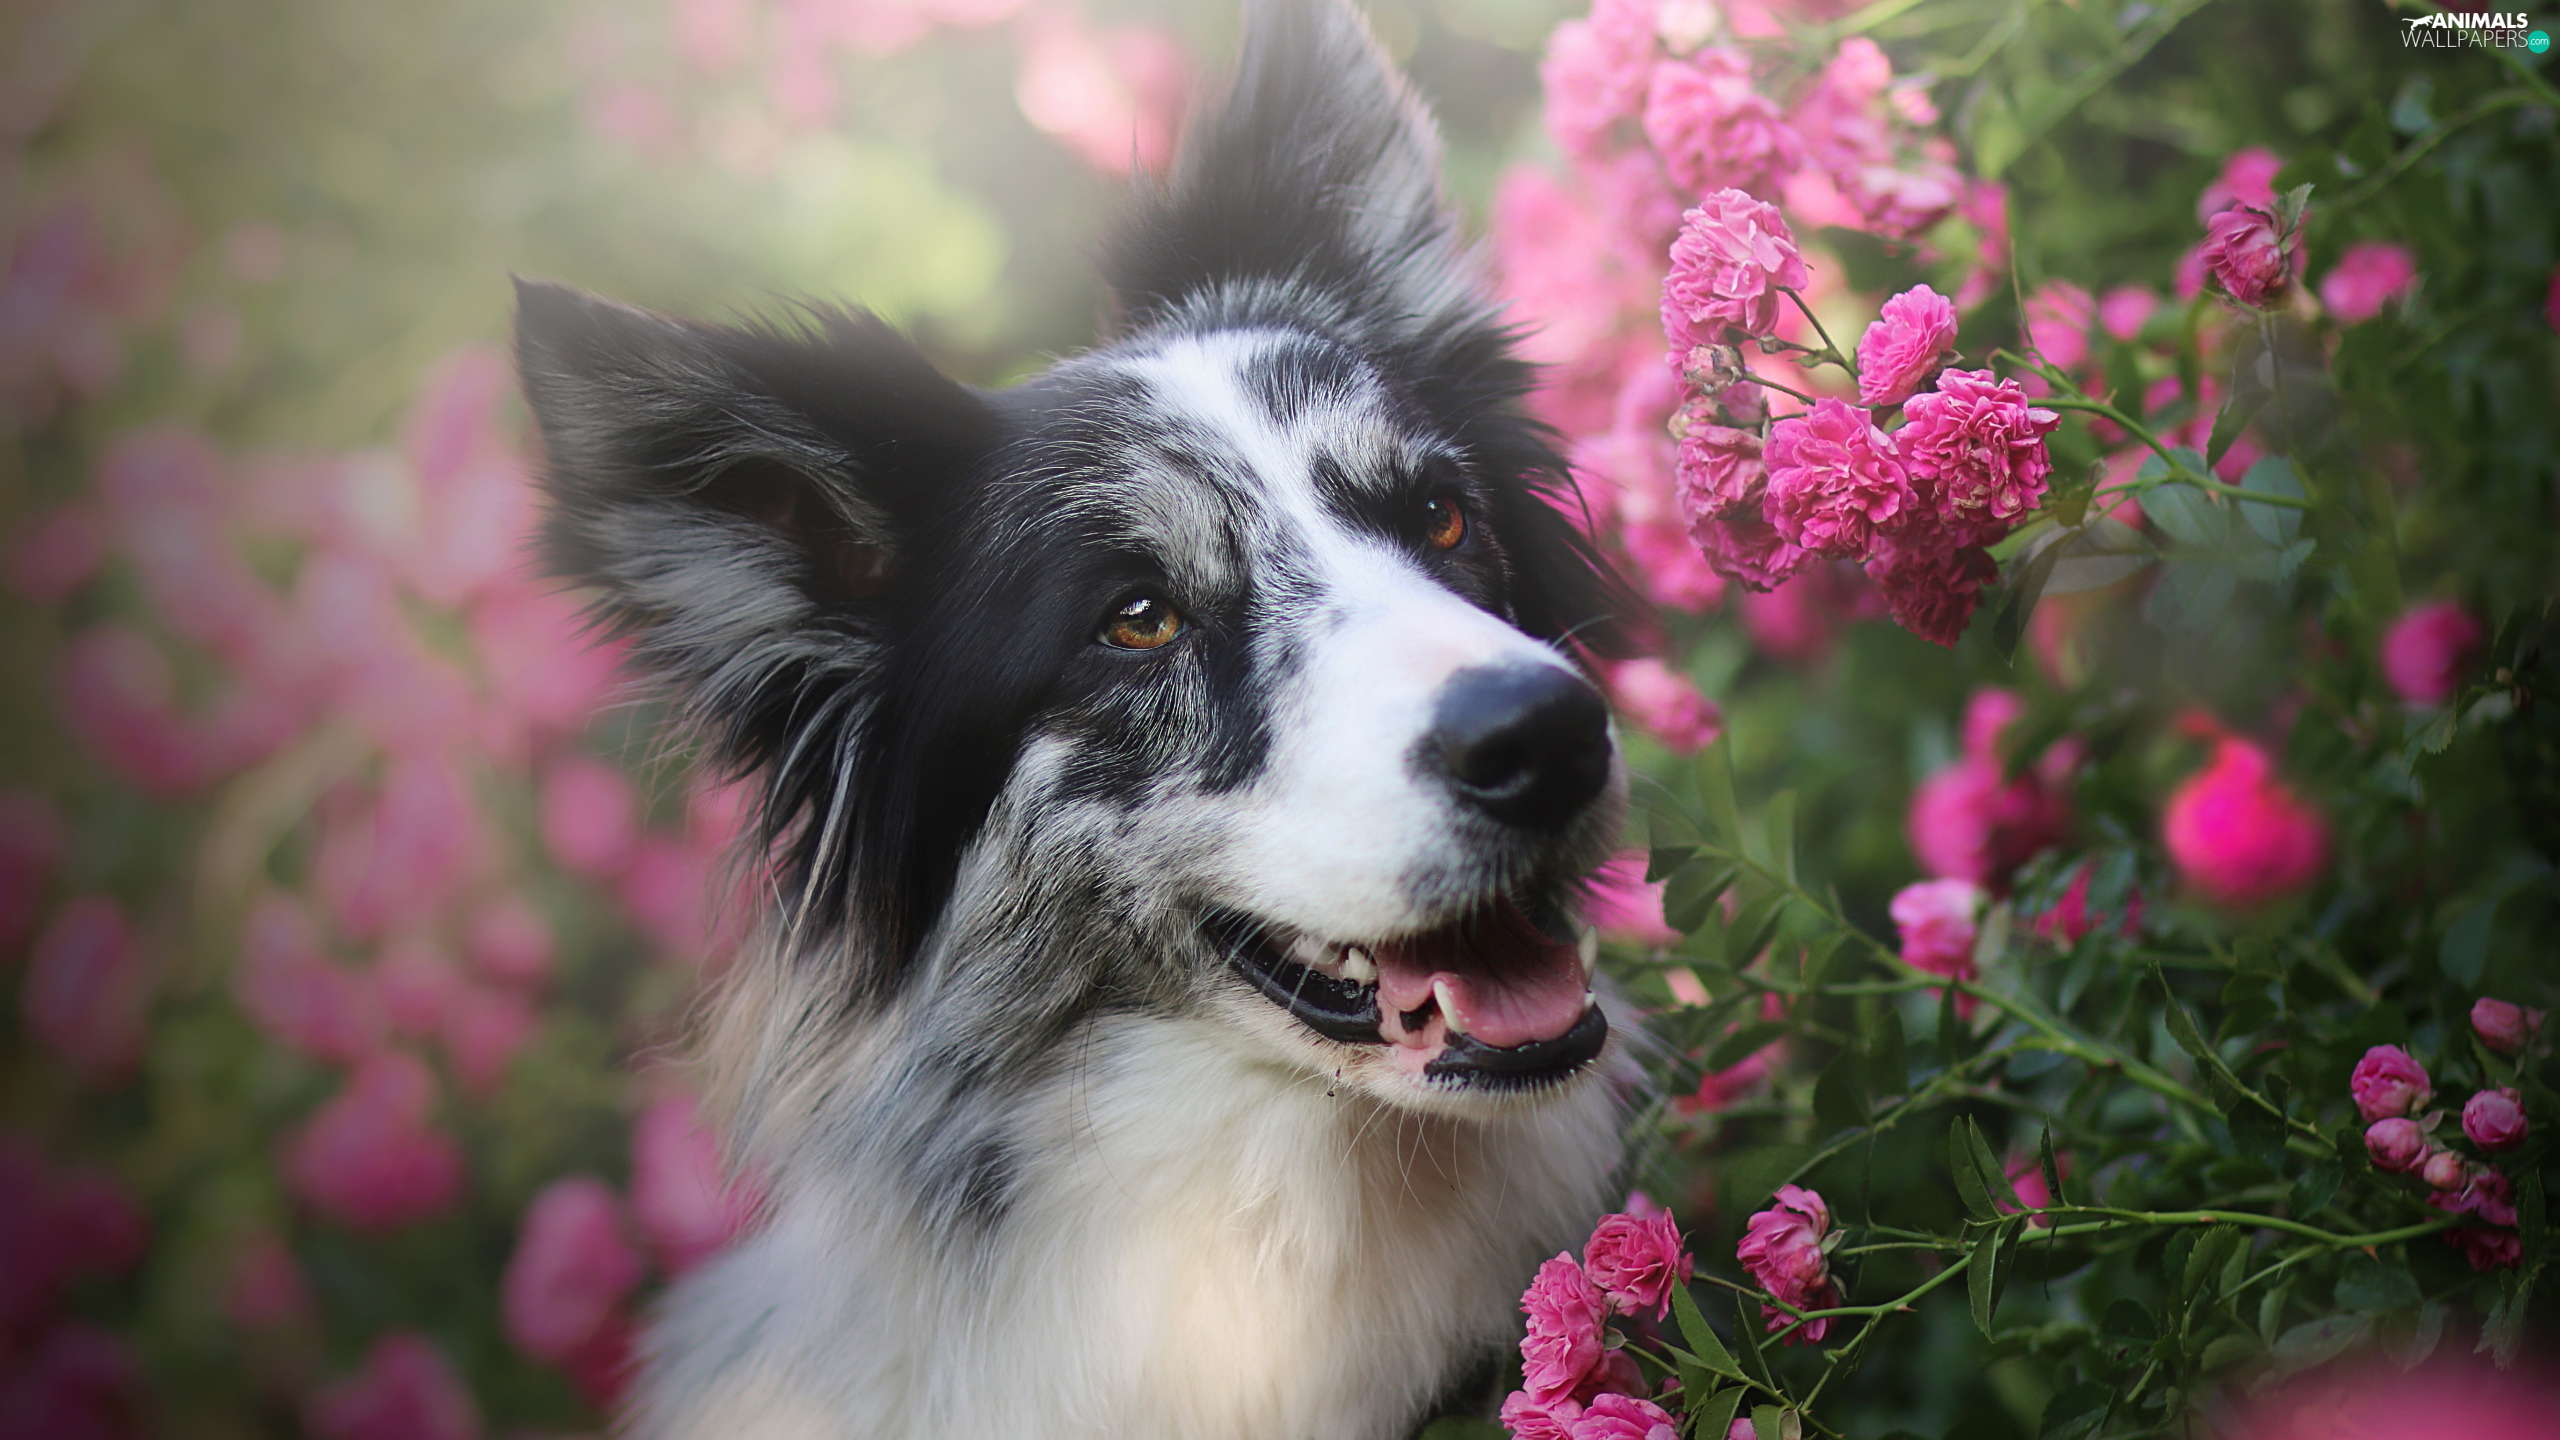 Flowers, roses, Border Collie, Pink, dog